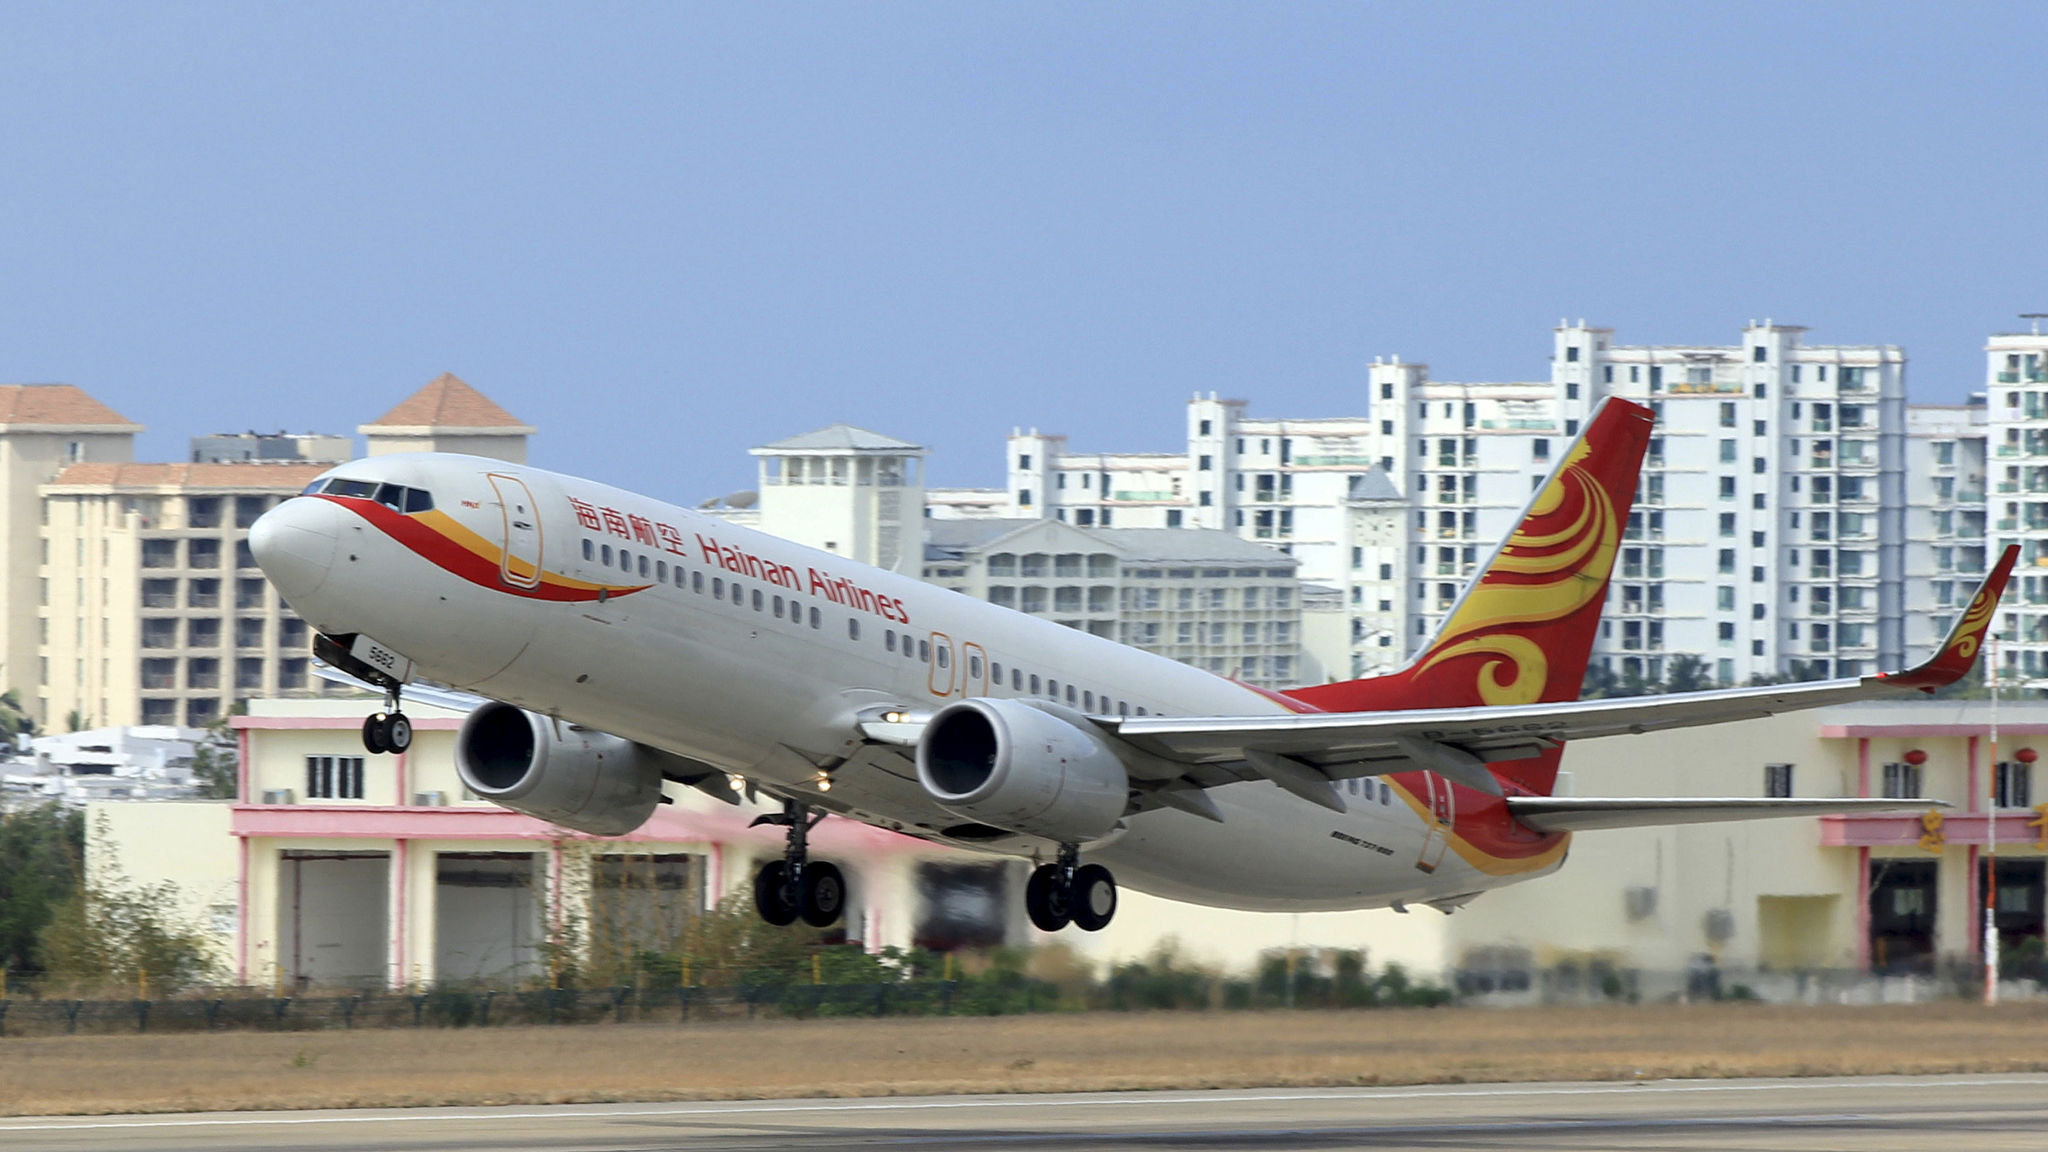 HNA debt drag forces deviation from flight plan | Financial